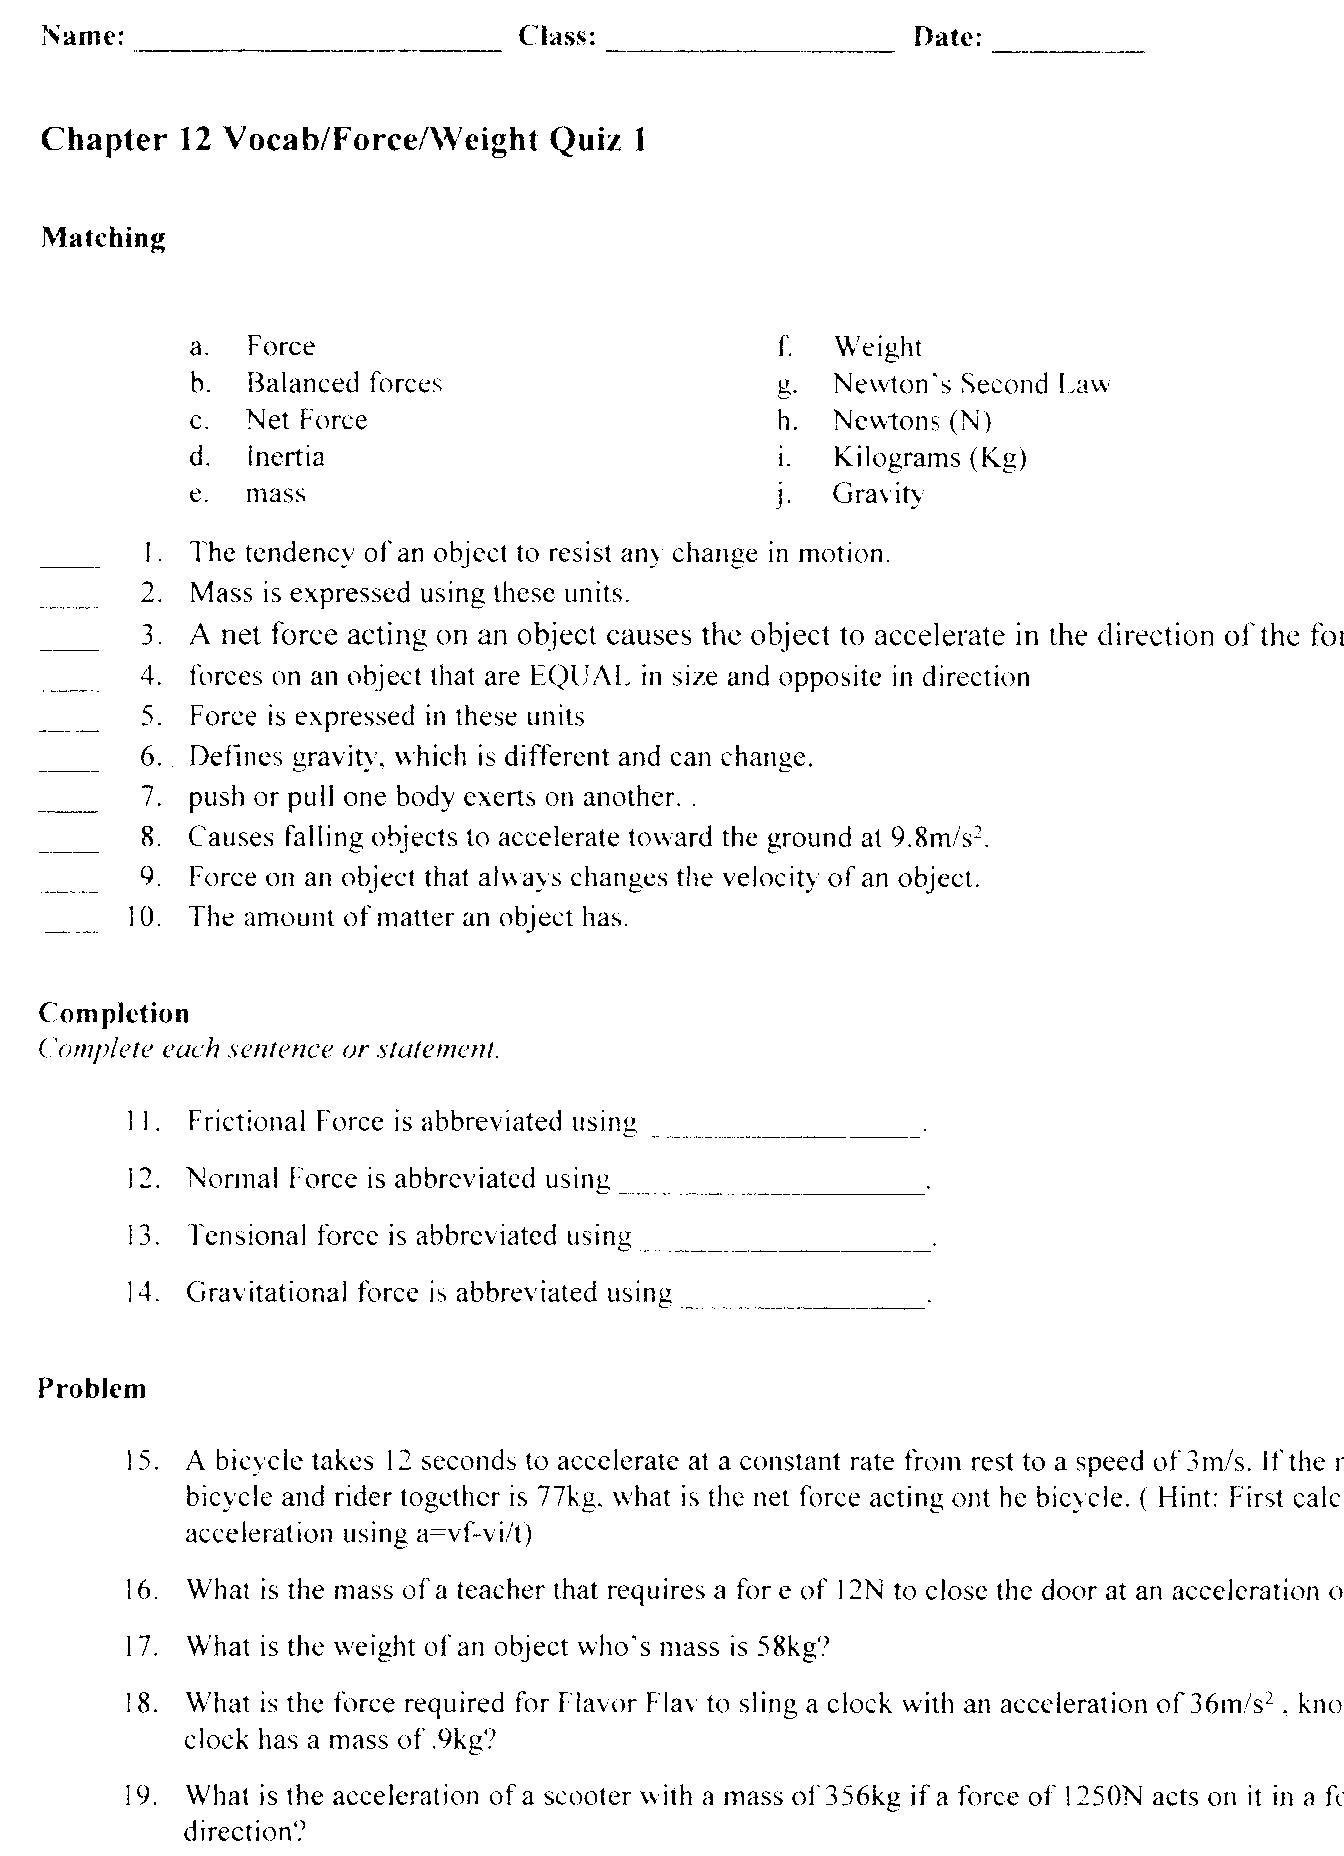 Printables Momentum Problems Worksheet quia class page riverspscience worksheetsforce quiz side 1 force 2 momentum problems